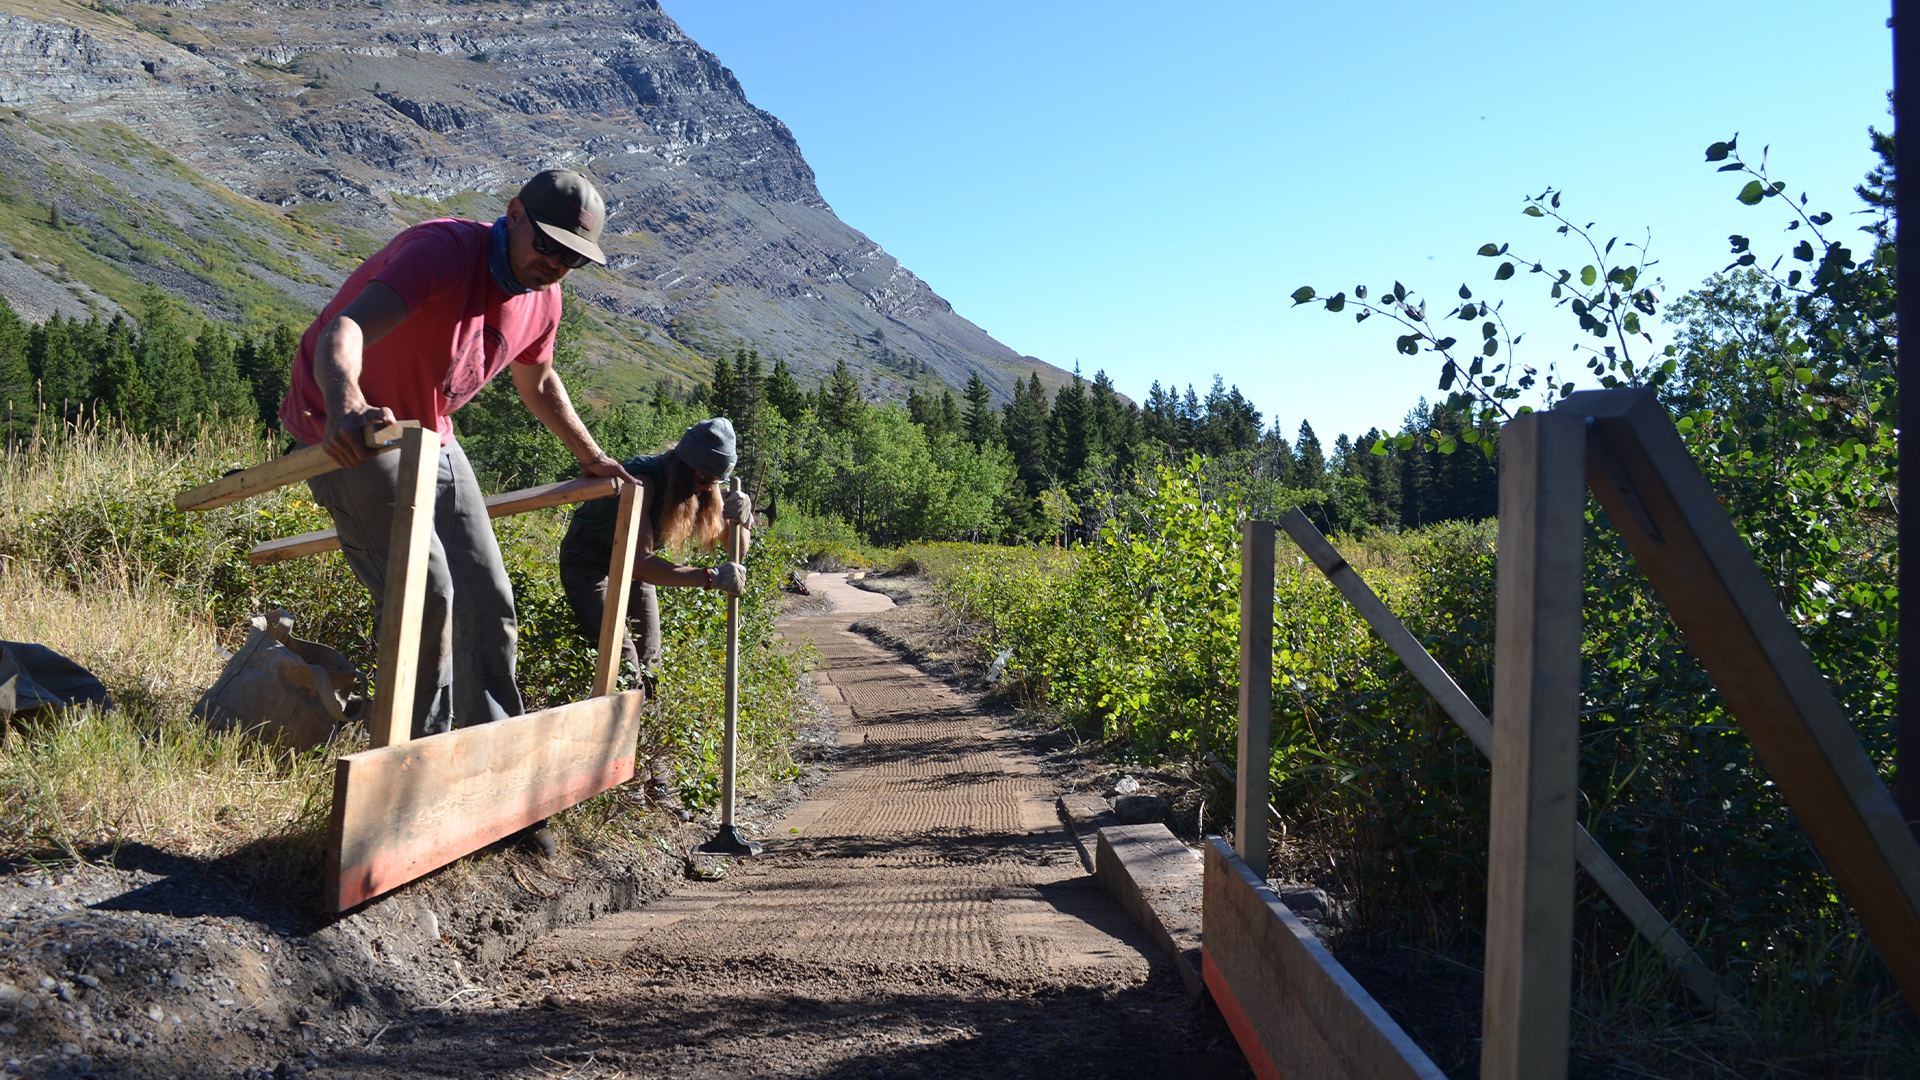 A team of trail crew workers install a bridge on a newly flattened trail with mountains in the background